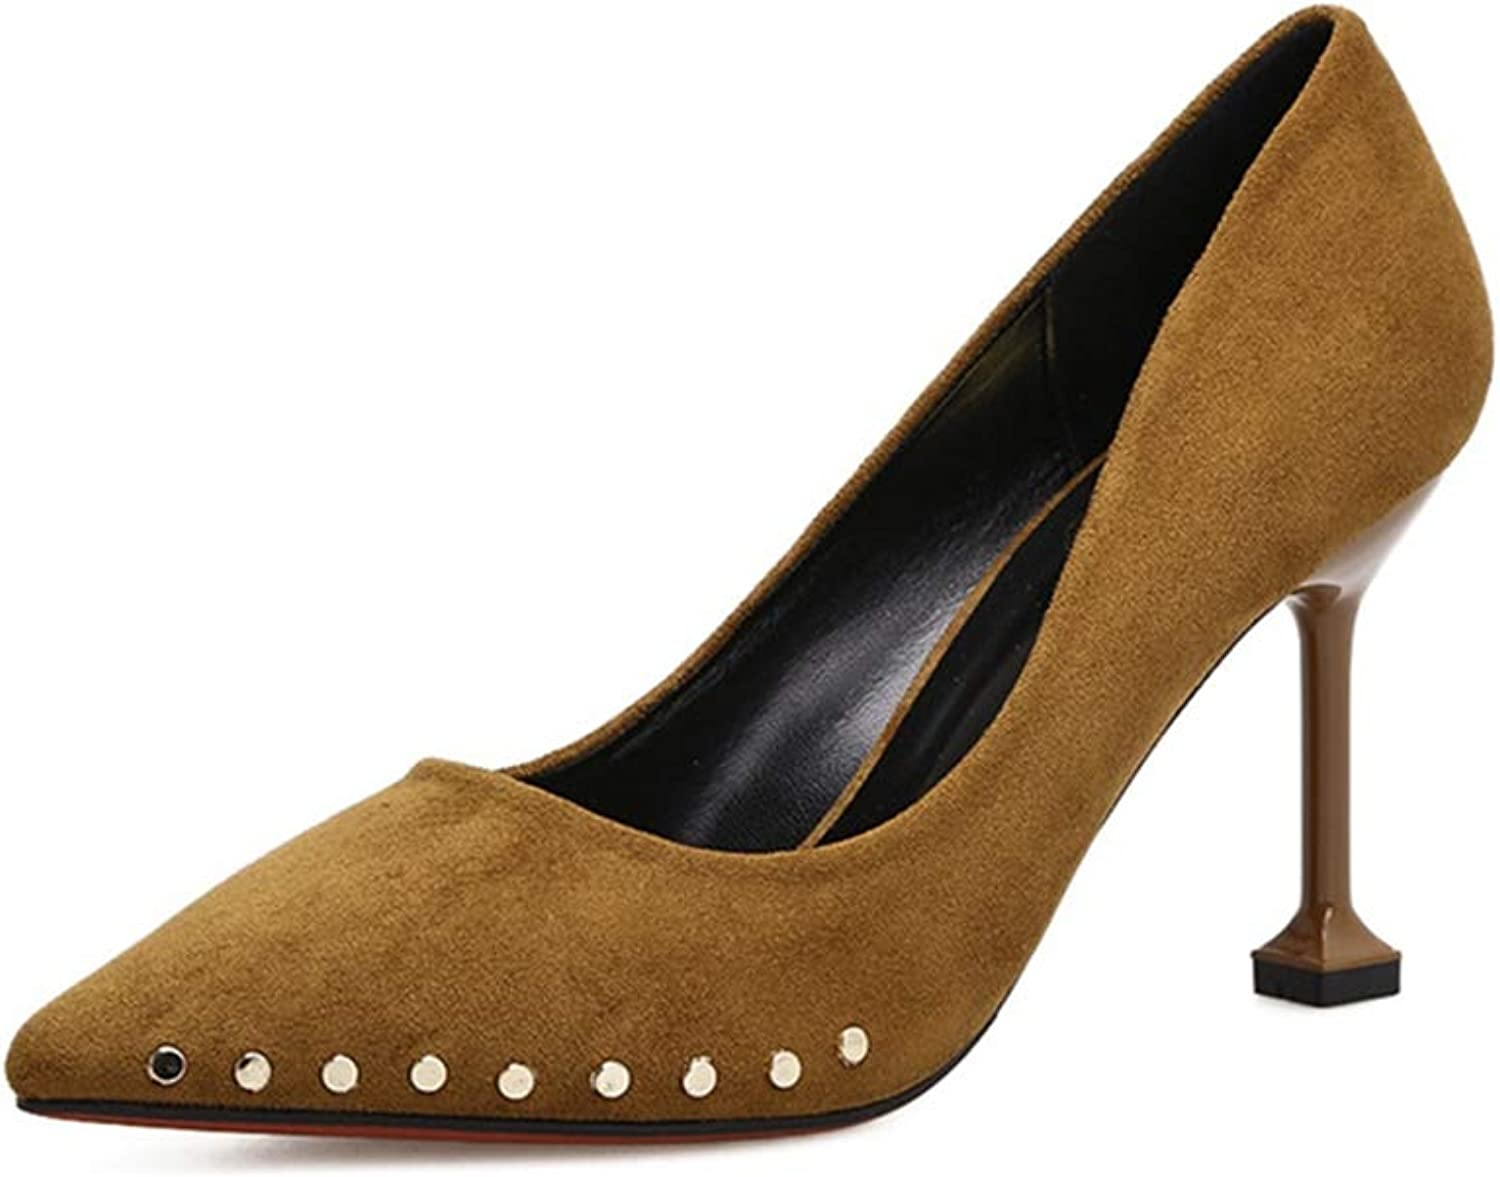 Phil Betty Women's Pumps,Suede Stylish Rivet Solid color Slip-on Spring Formal High Heels